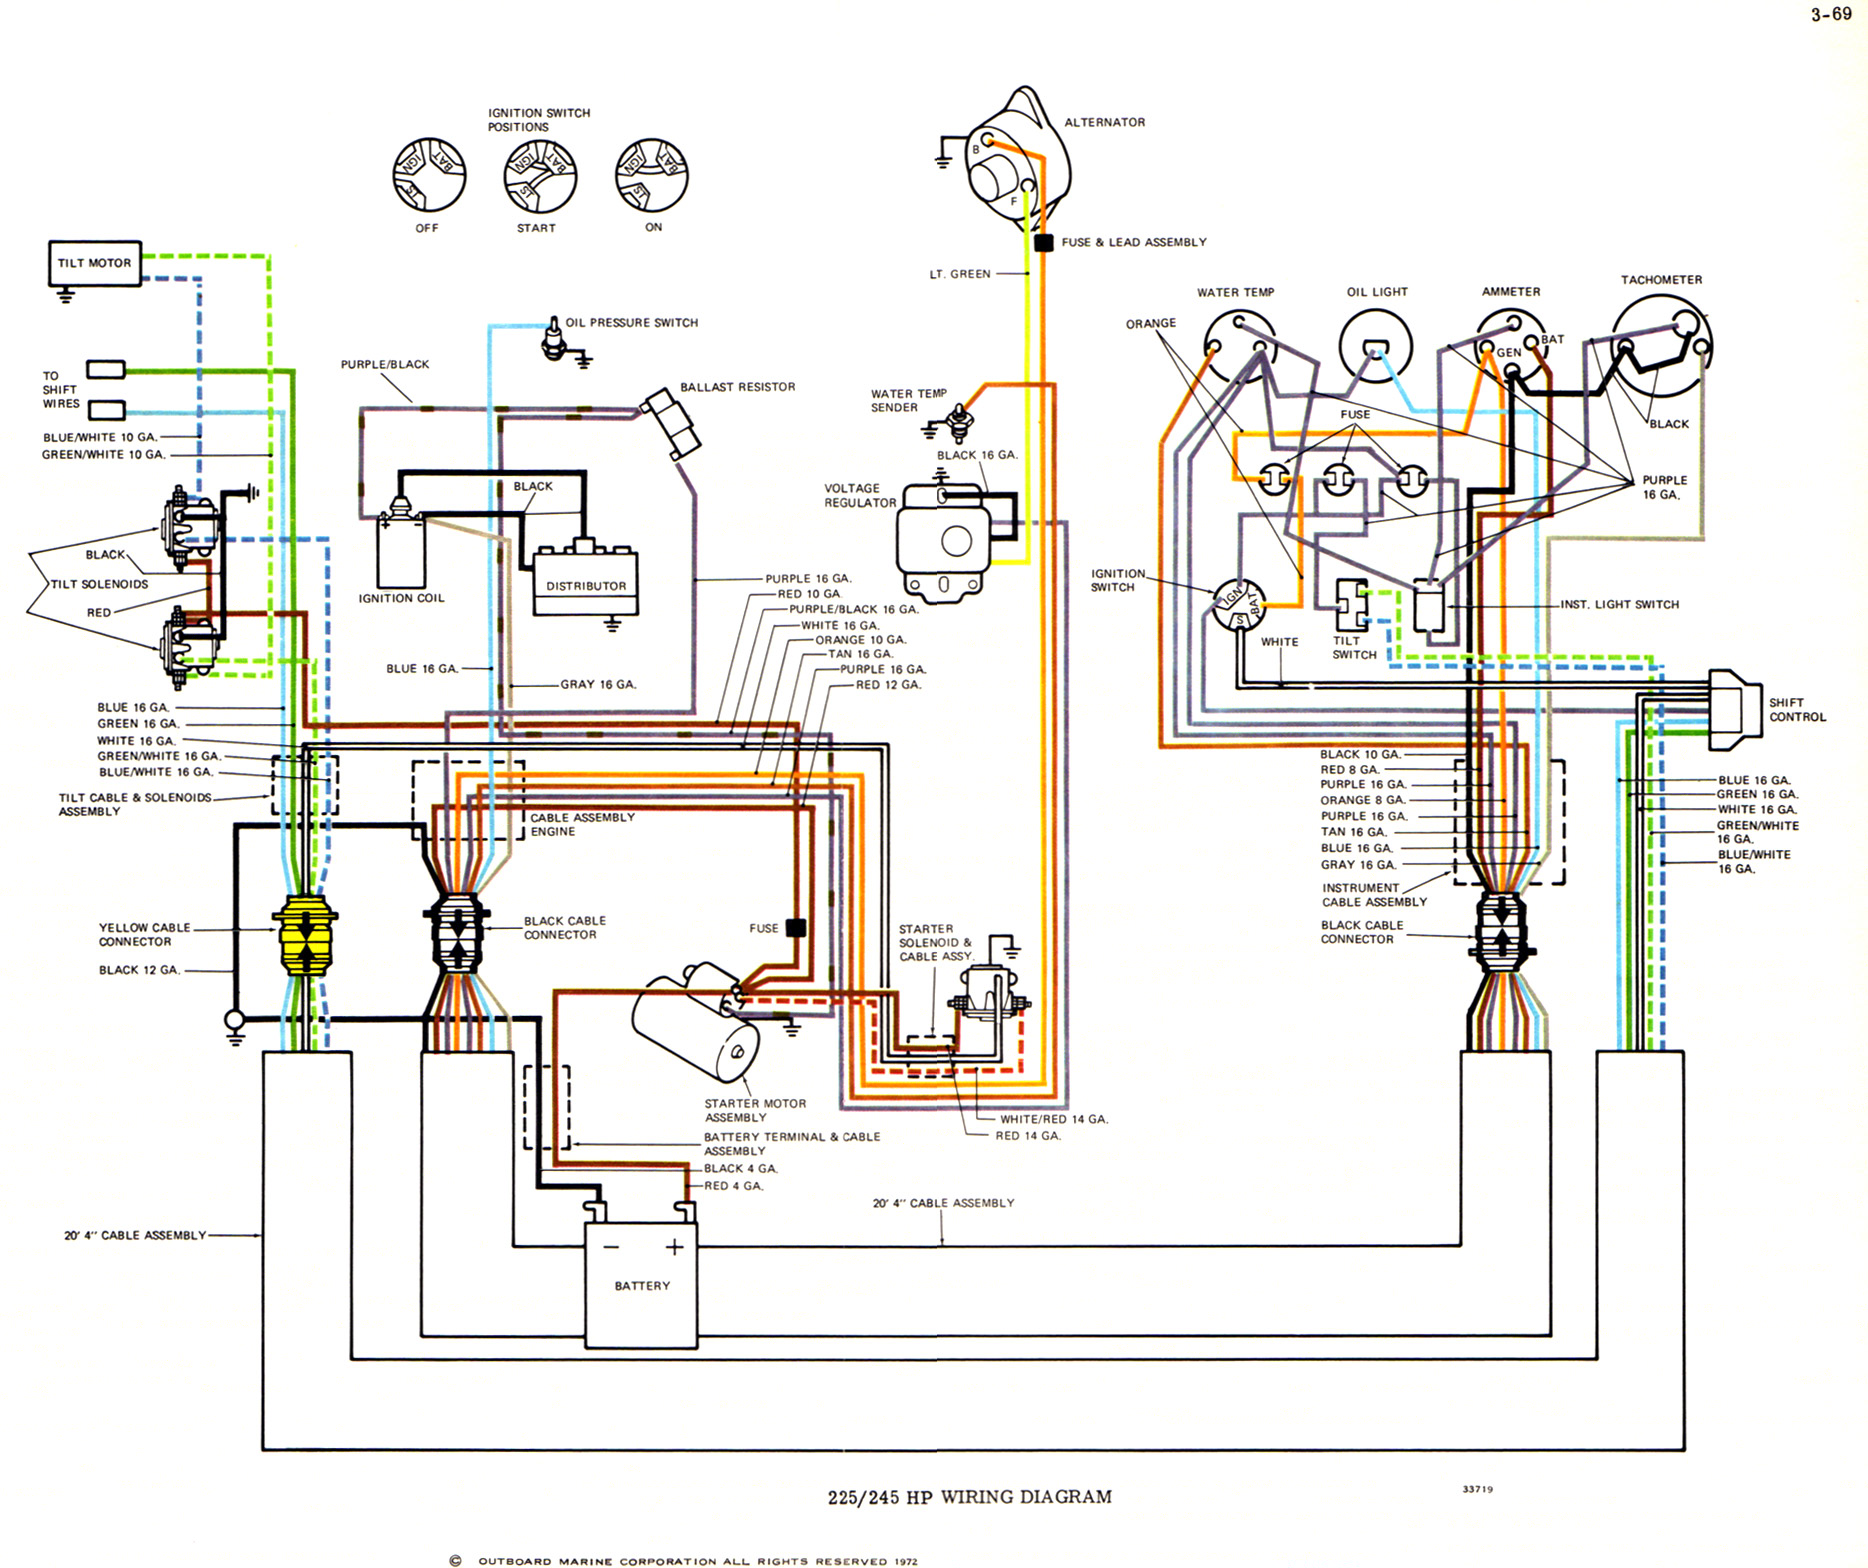 73_OMC_V8_all_big omc alternator wiring diagram omc cobra wiring diagram \u2022 wiring marine alternator engine wiring diagram at honlapkeszites.co